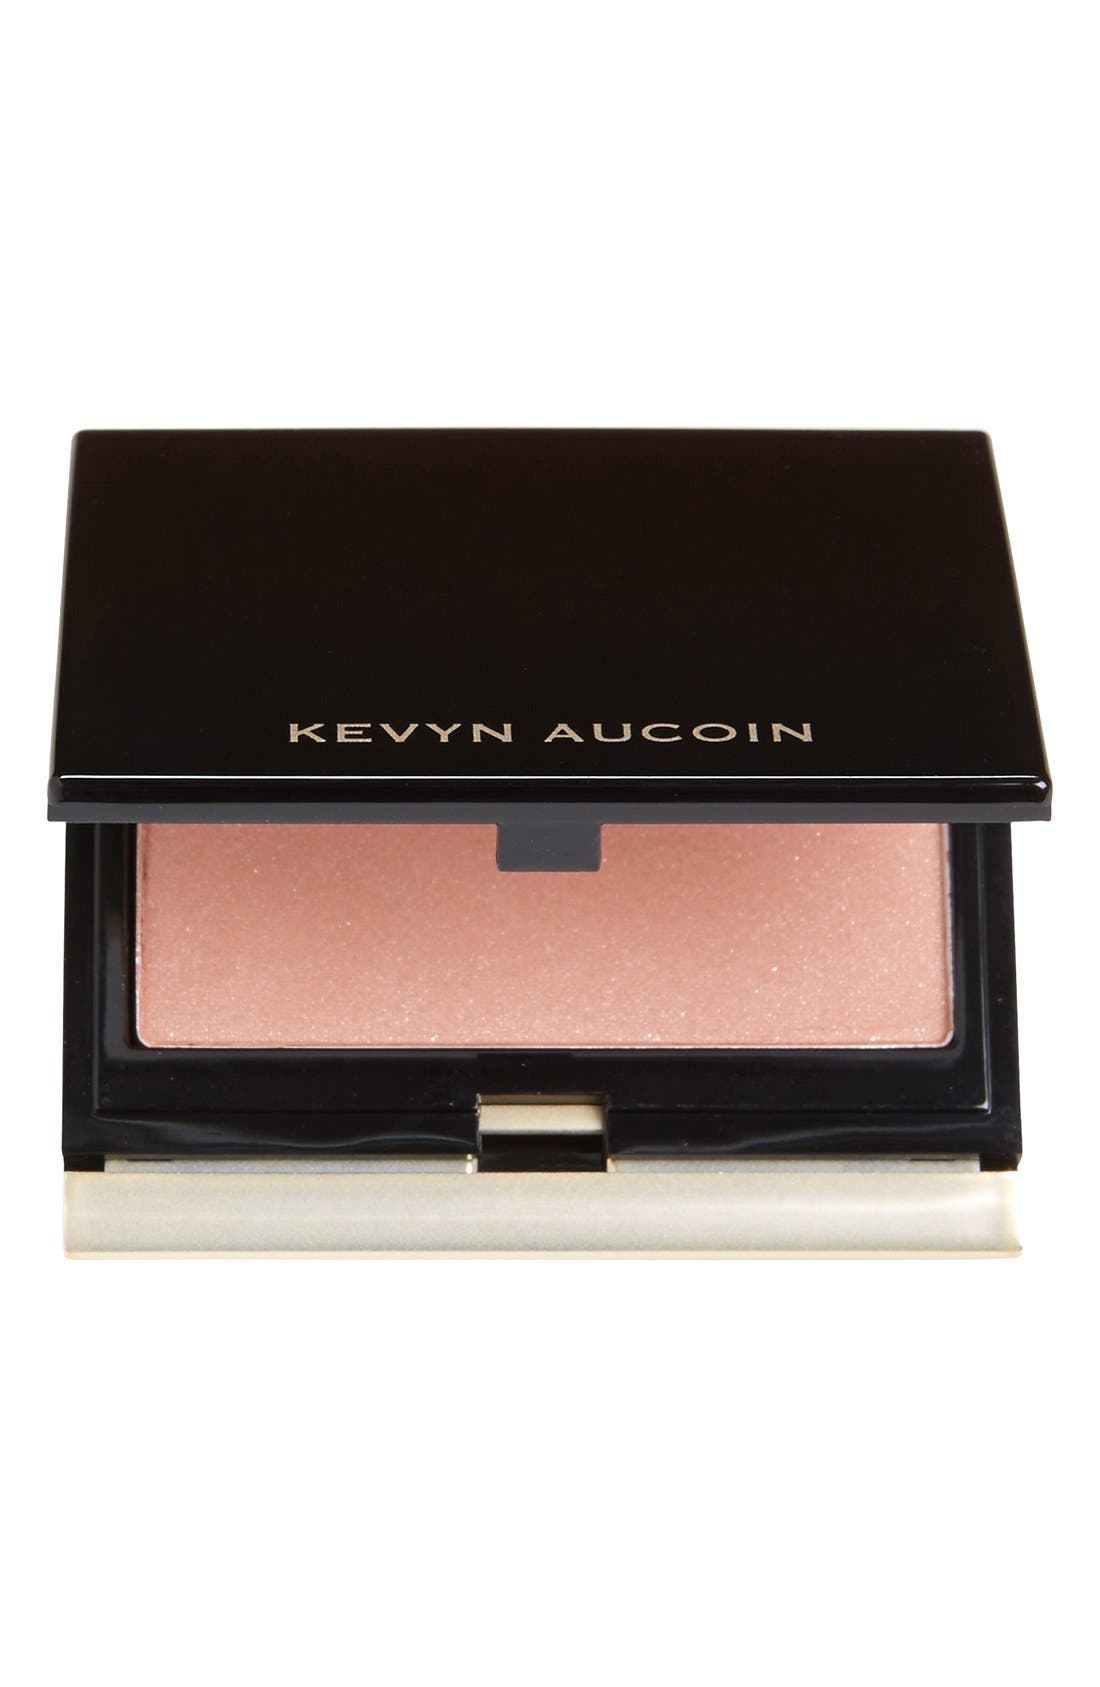 SPACE.NK.apothecary Kevyn Aucoin Beauty Pure Powder Glow,                             Main thumbnail 1, color,                             250